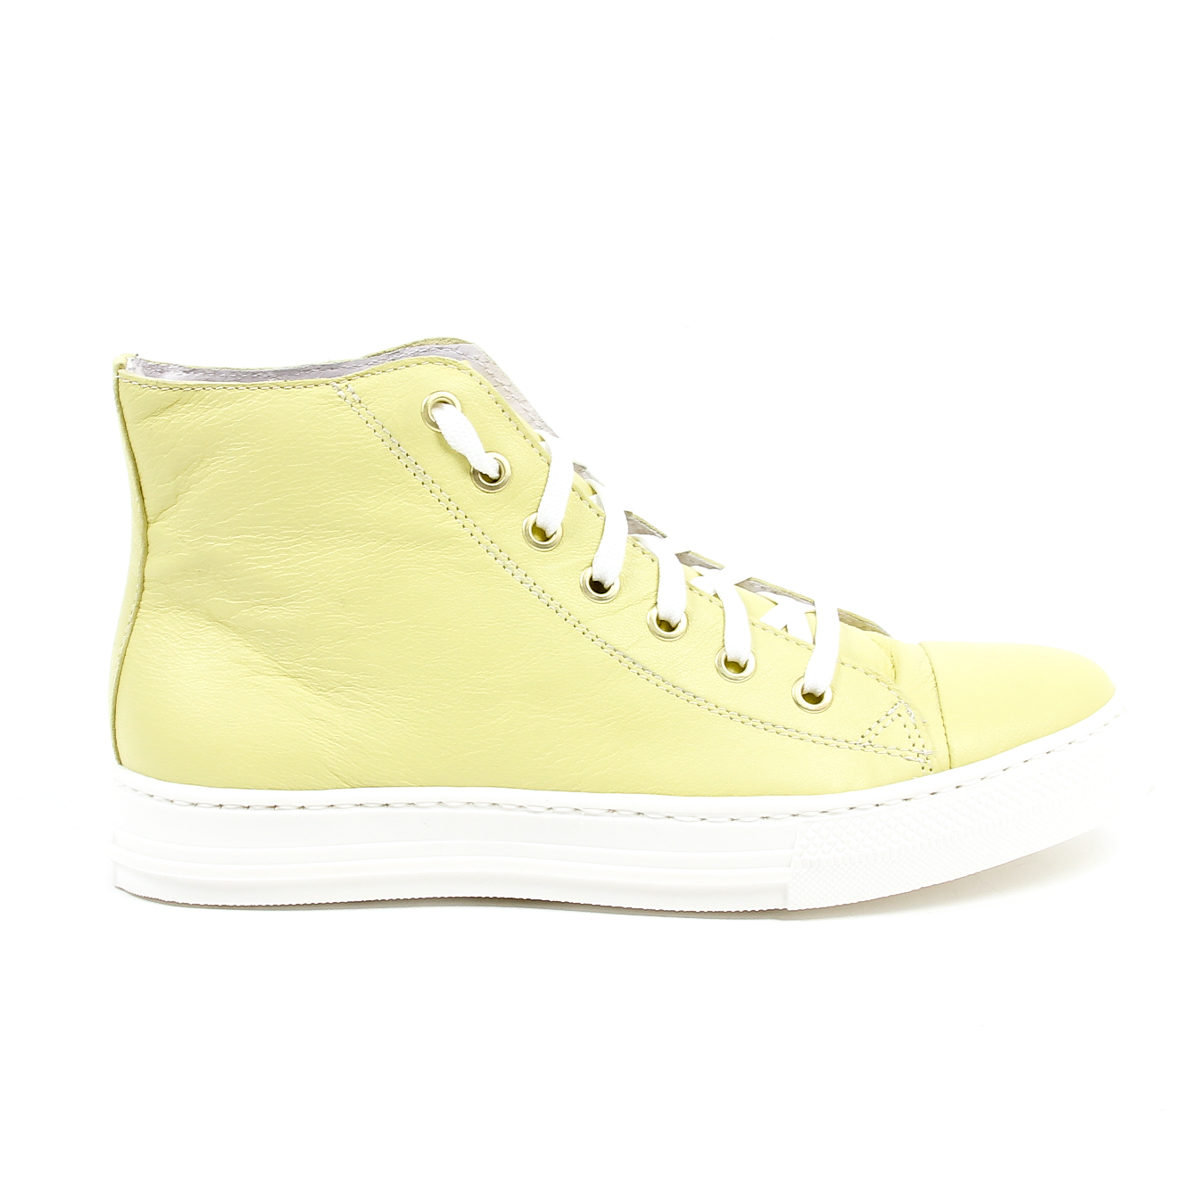 Primary image for V 1969 Italia Womens High Sneaker